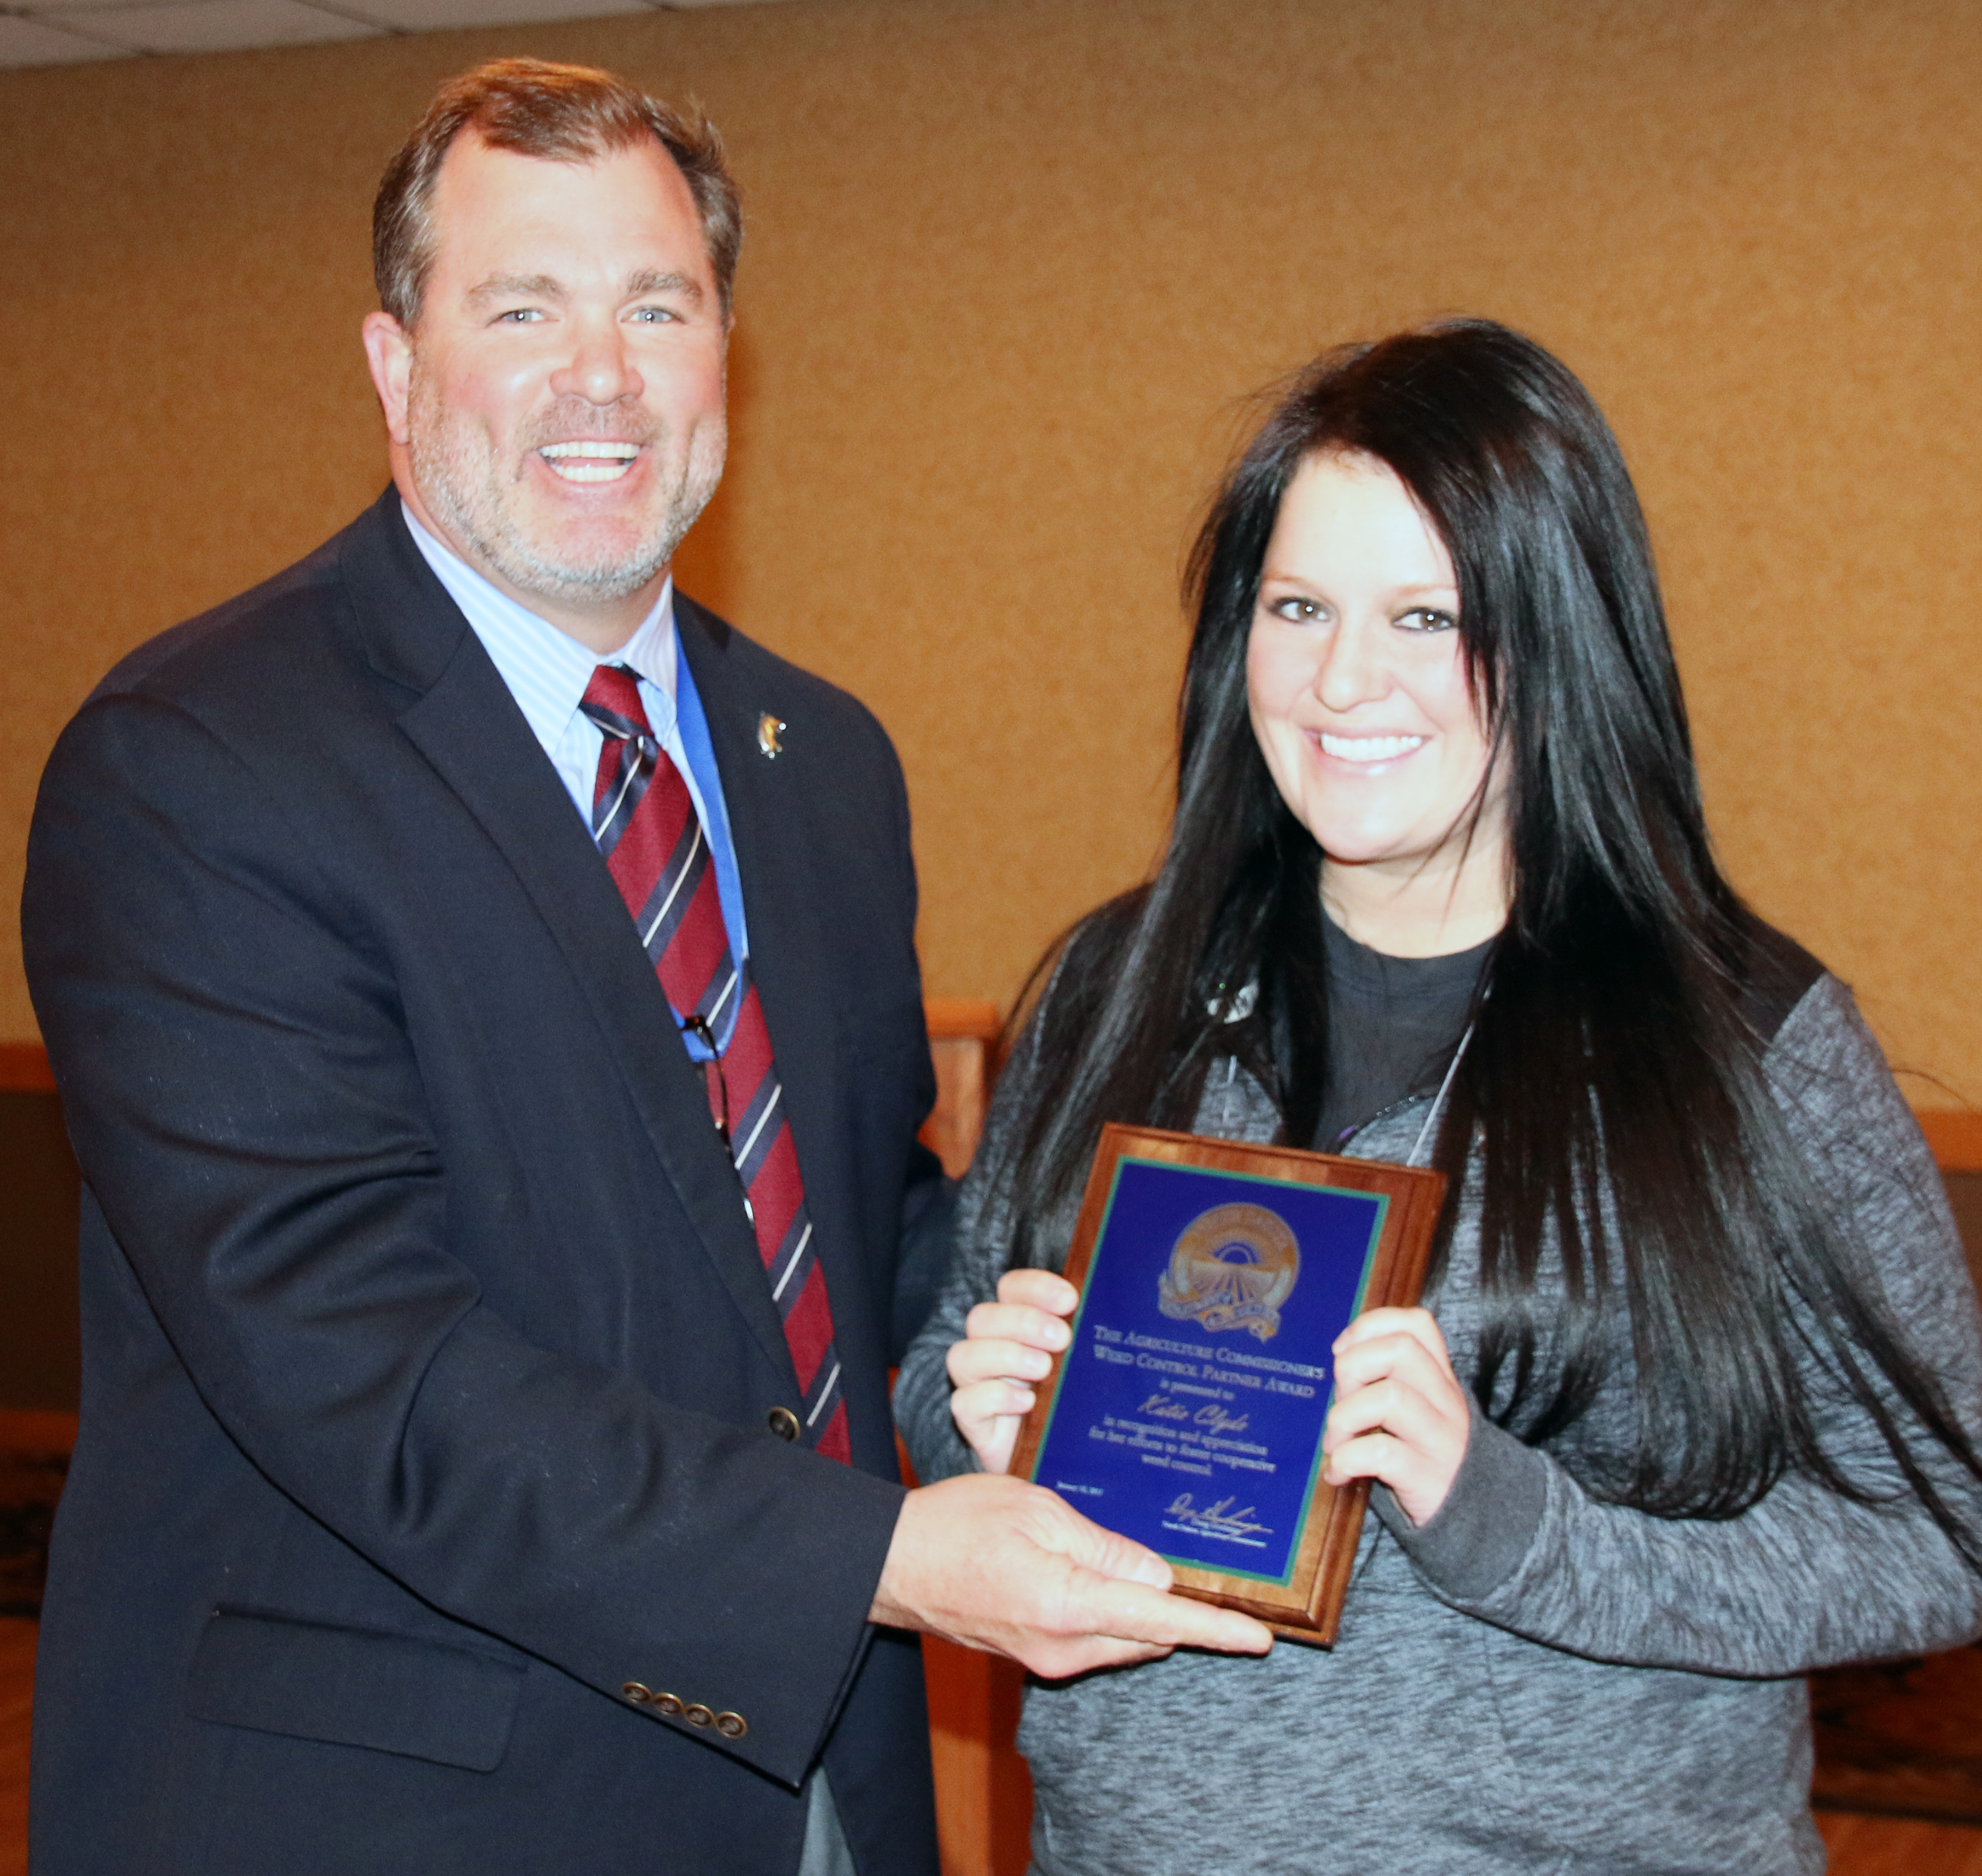 Deputy Agriculture Commissioner Tom Bodine, L, presents the award to Katie Clyde